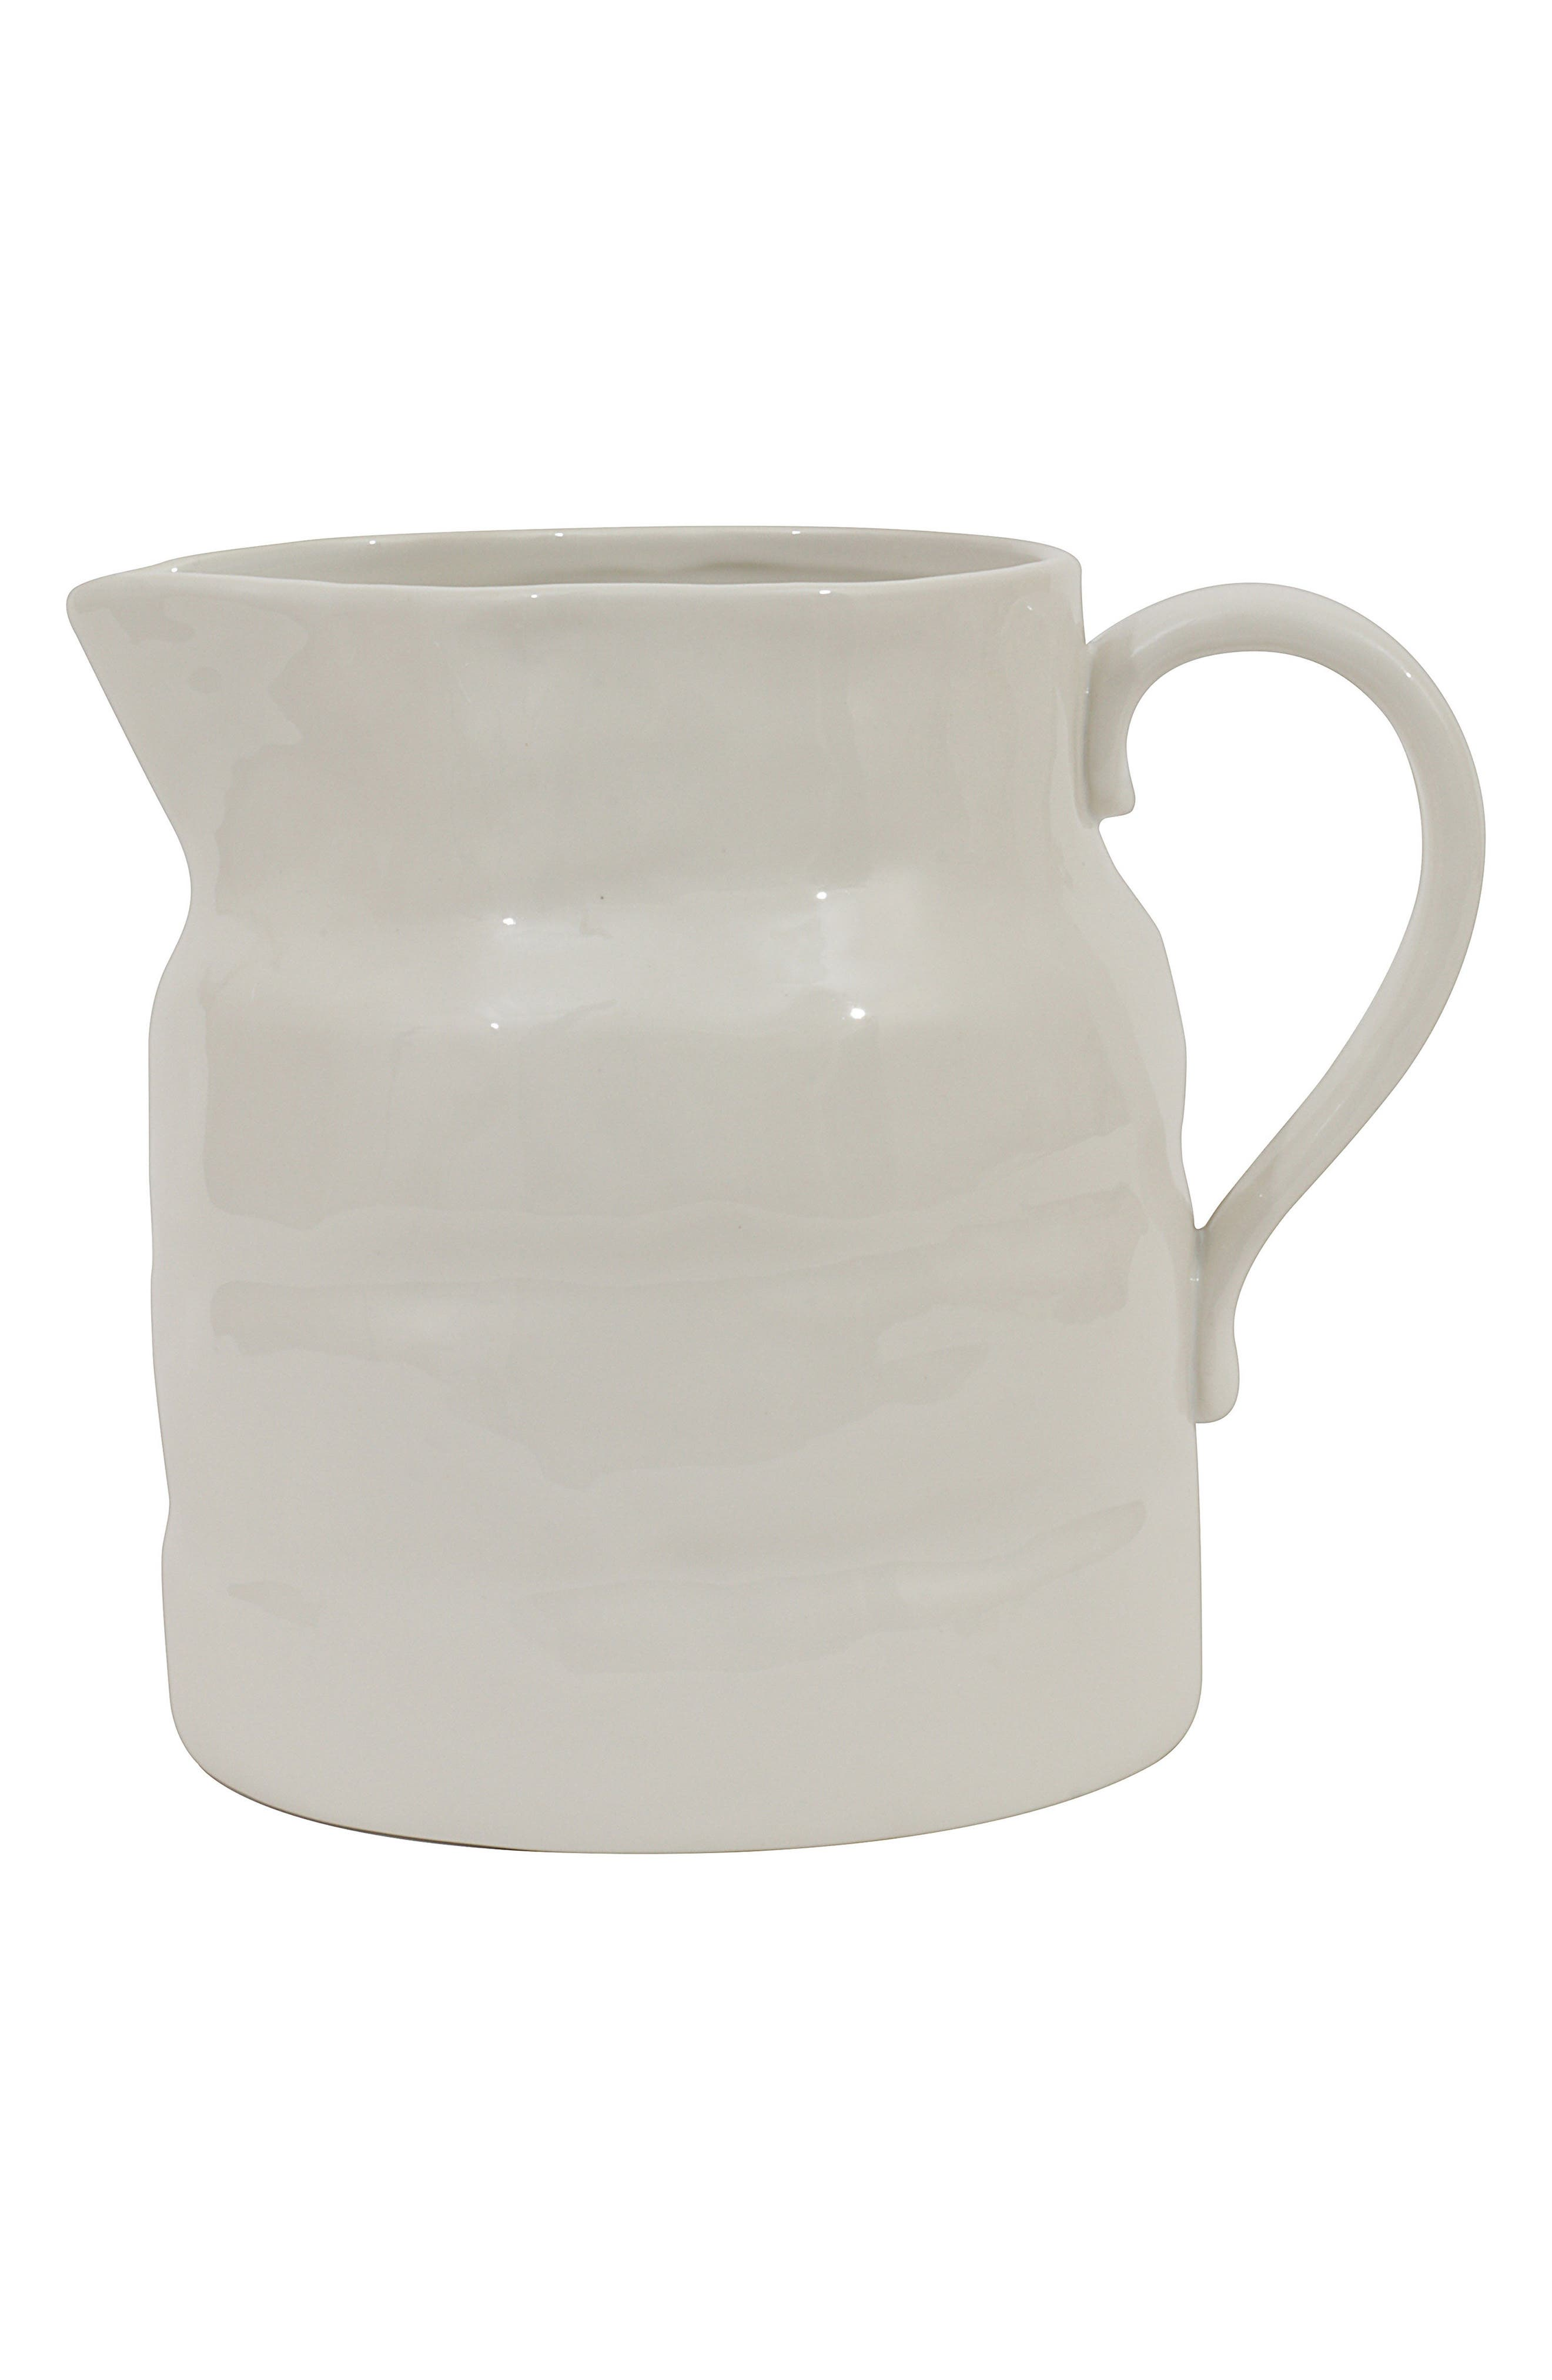 Large Ceramic Pitcher,                         Main,                         color, White